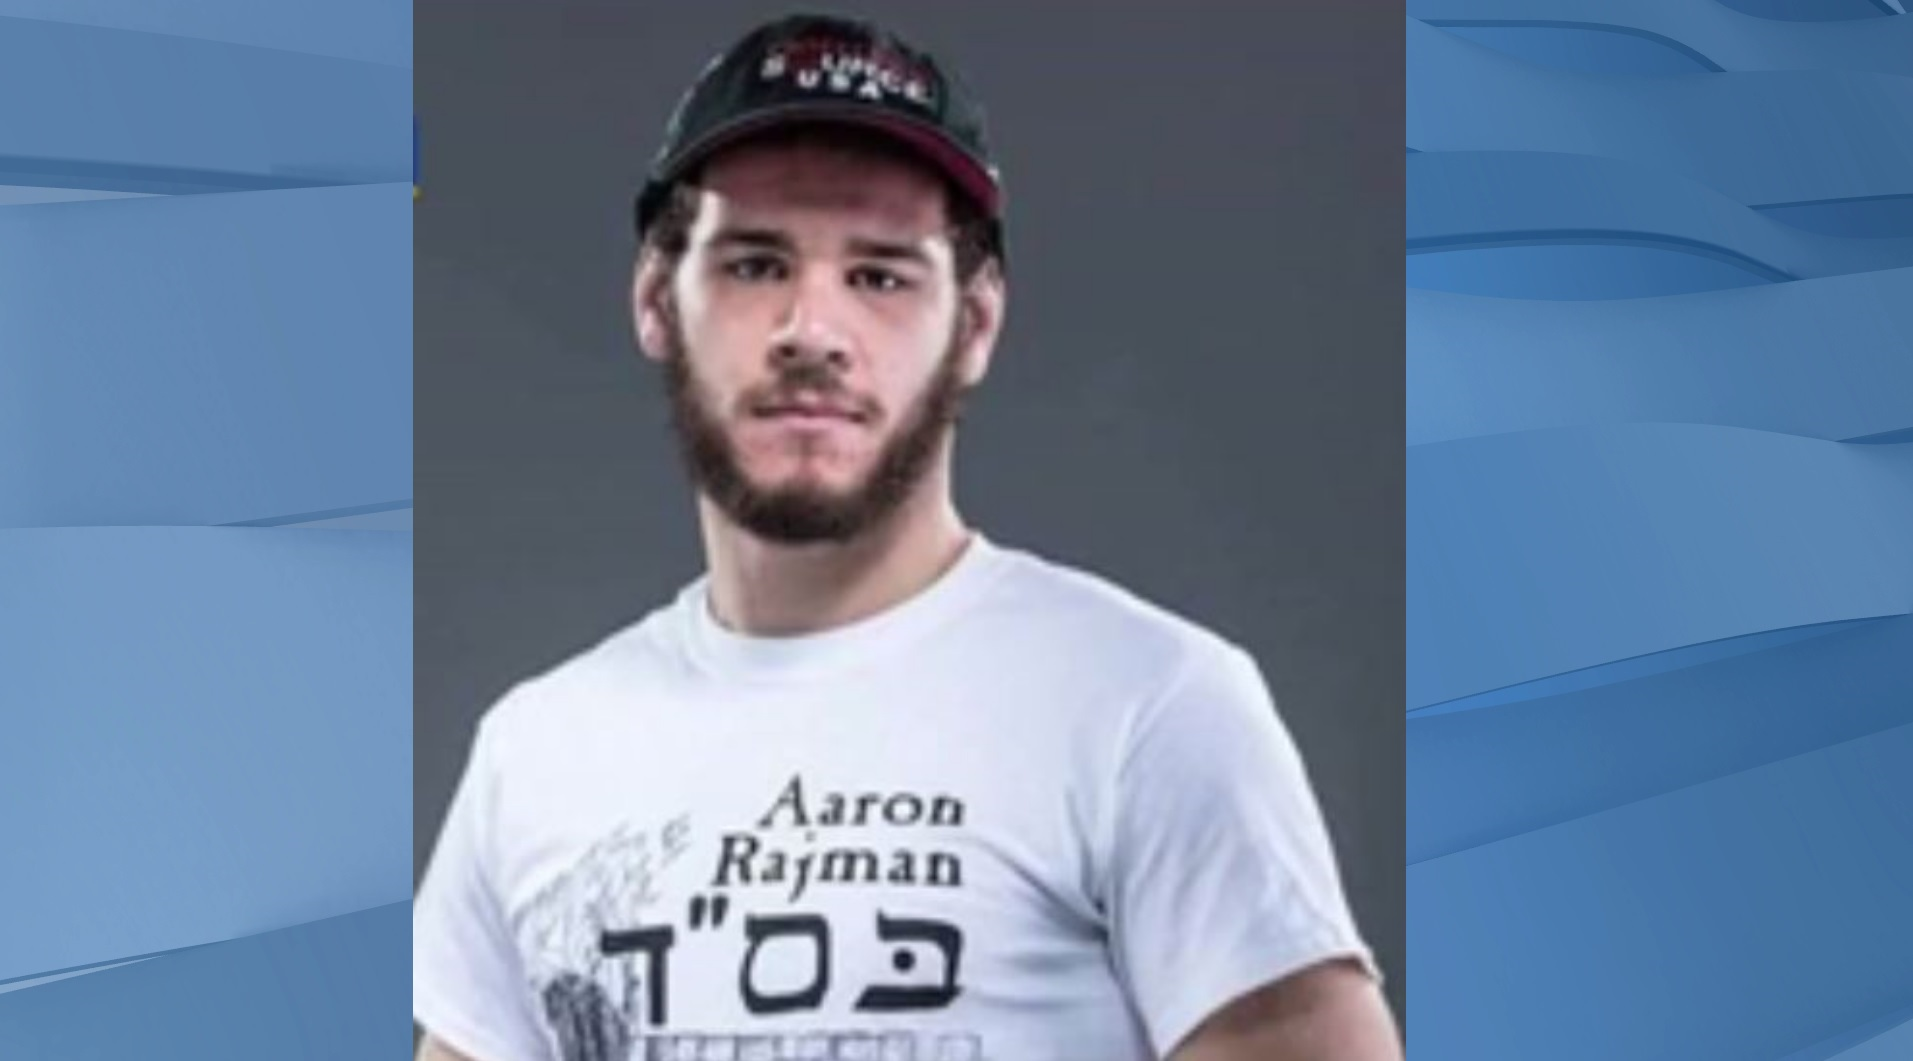 MMA Fighter Aaron Rajman Dies at Age 25